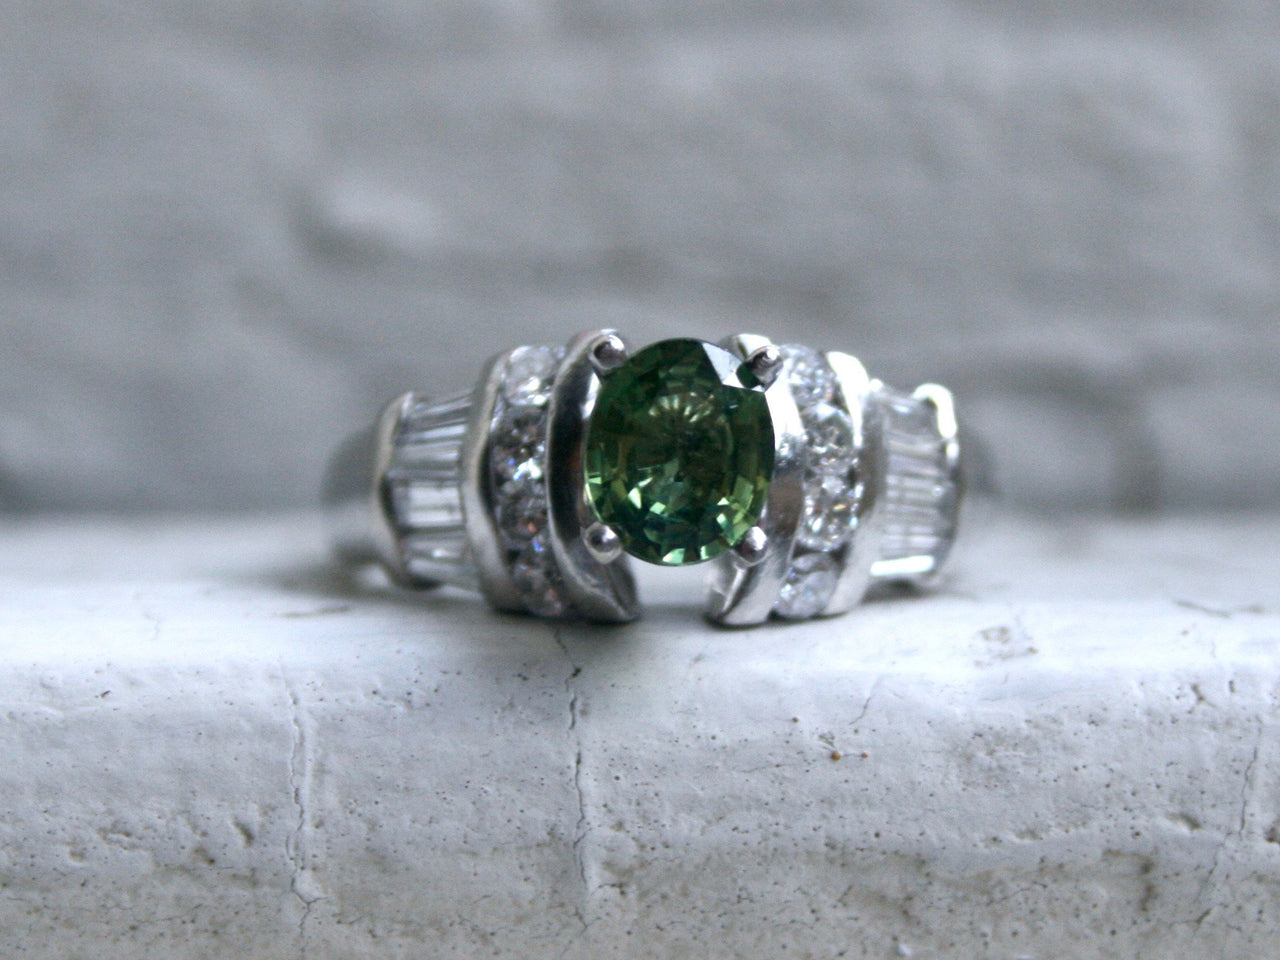 Vintage Platinum Green Sapphire and Diamond Ring Engagement Ring - 1.23ct